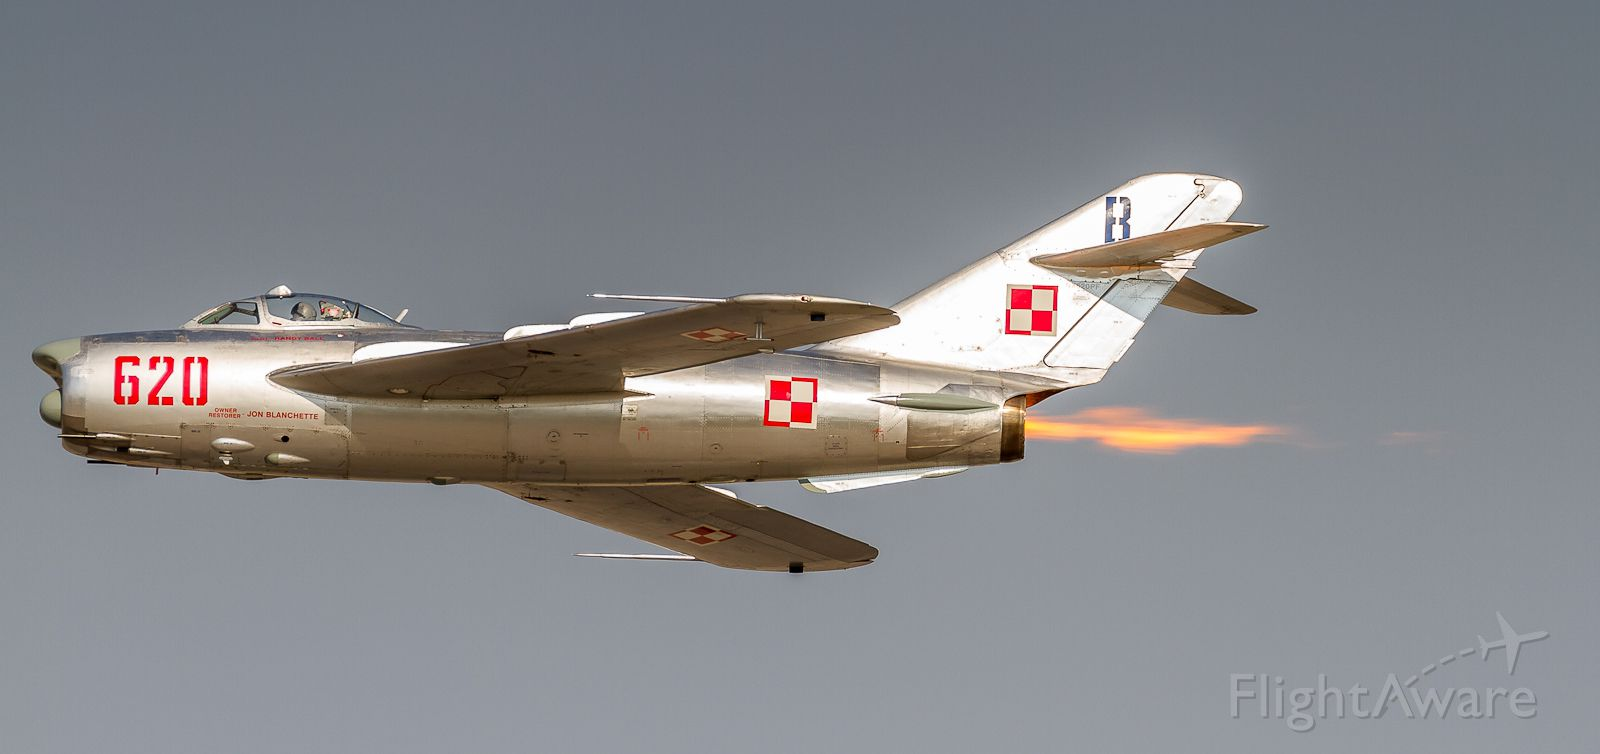 MIKOYAN MiG-17 (N620PF) - Randy Ball shows off the afterburner on this immaculate MIG 17 at Airshow London 2017